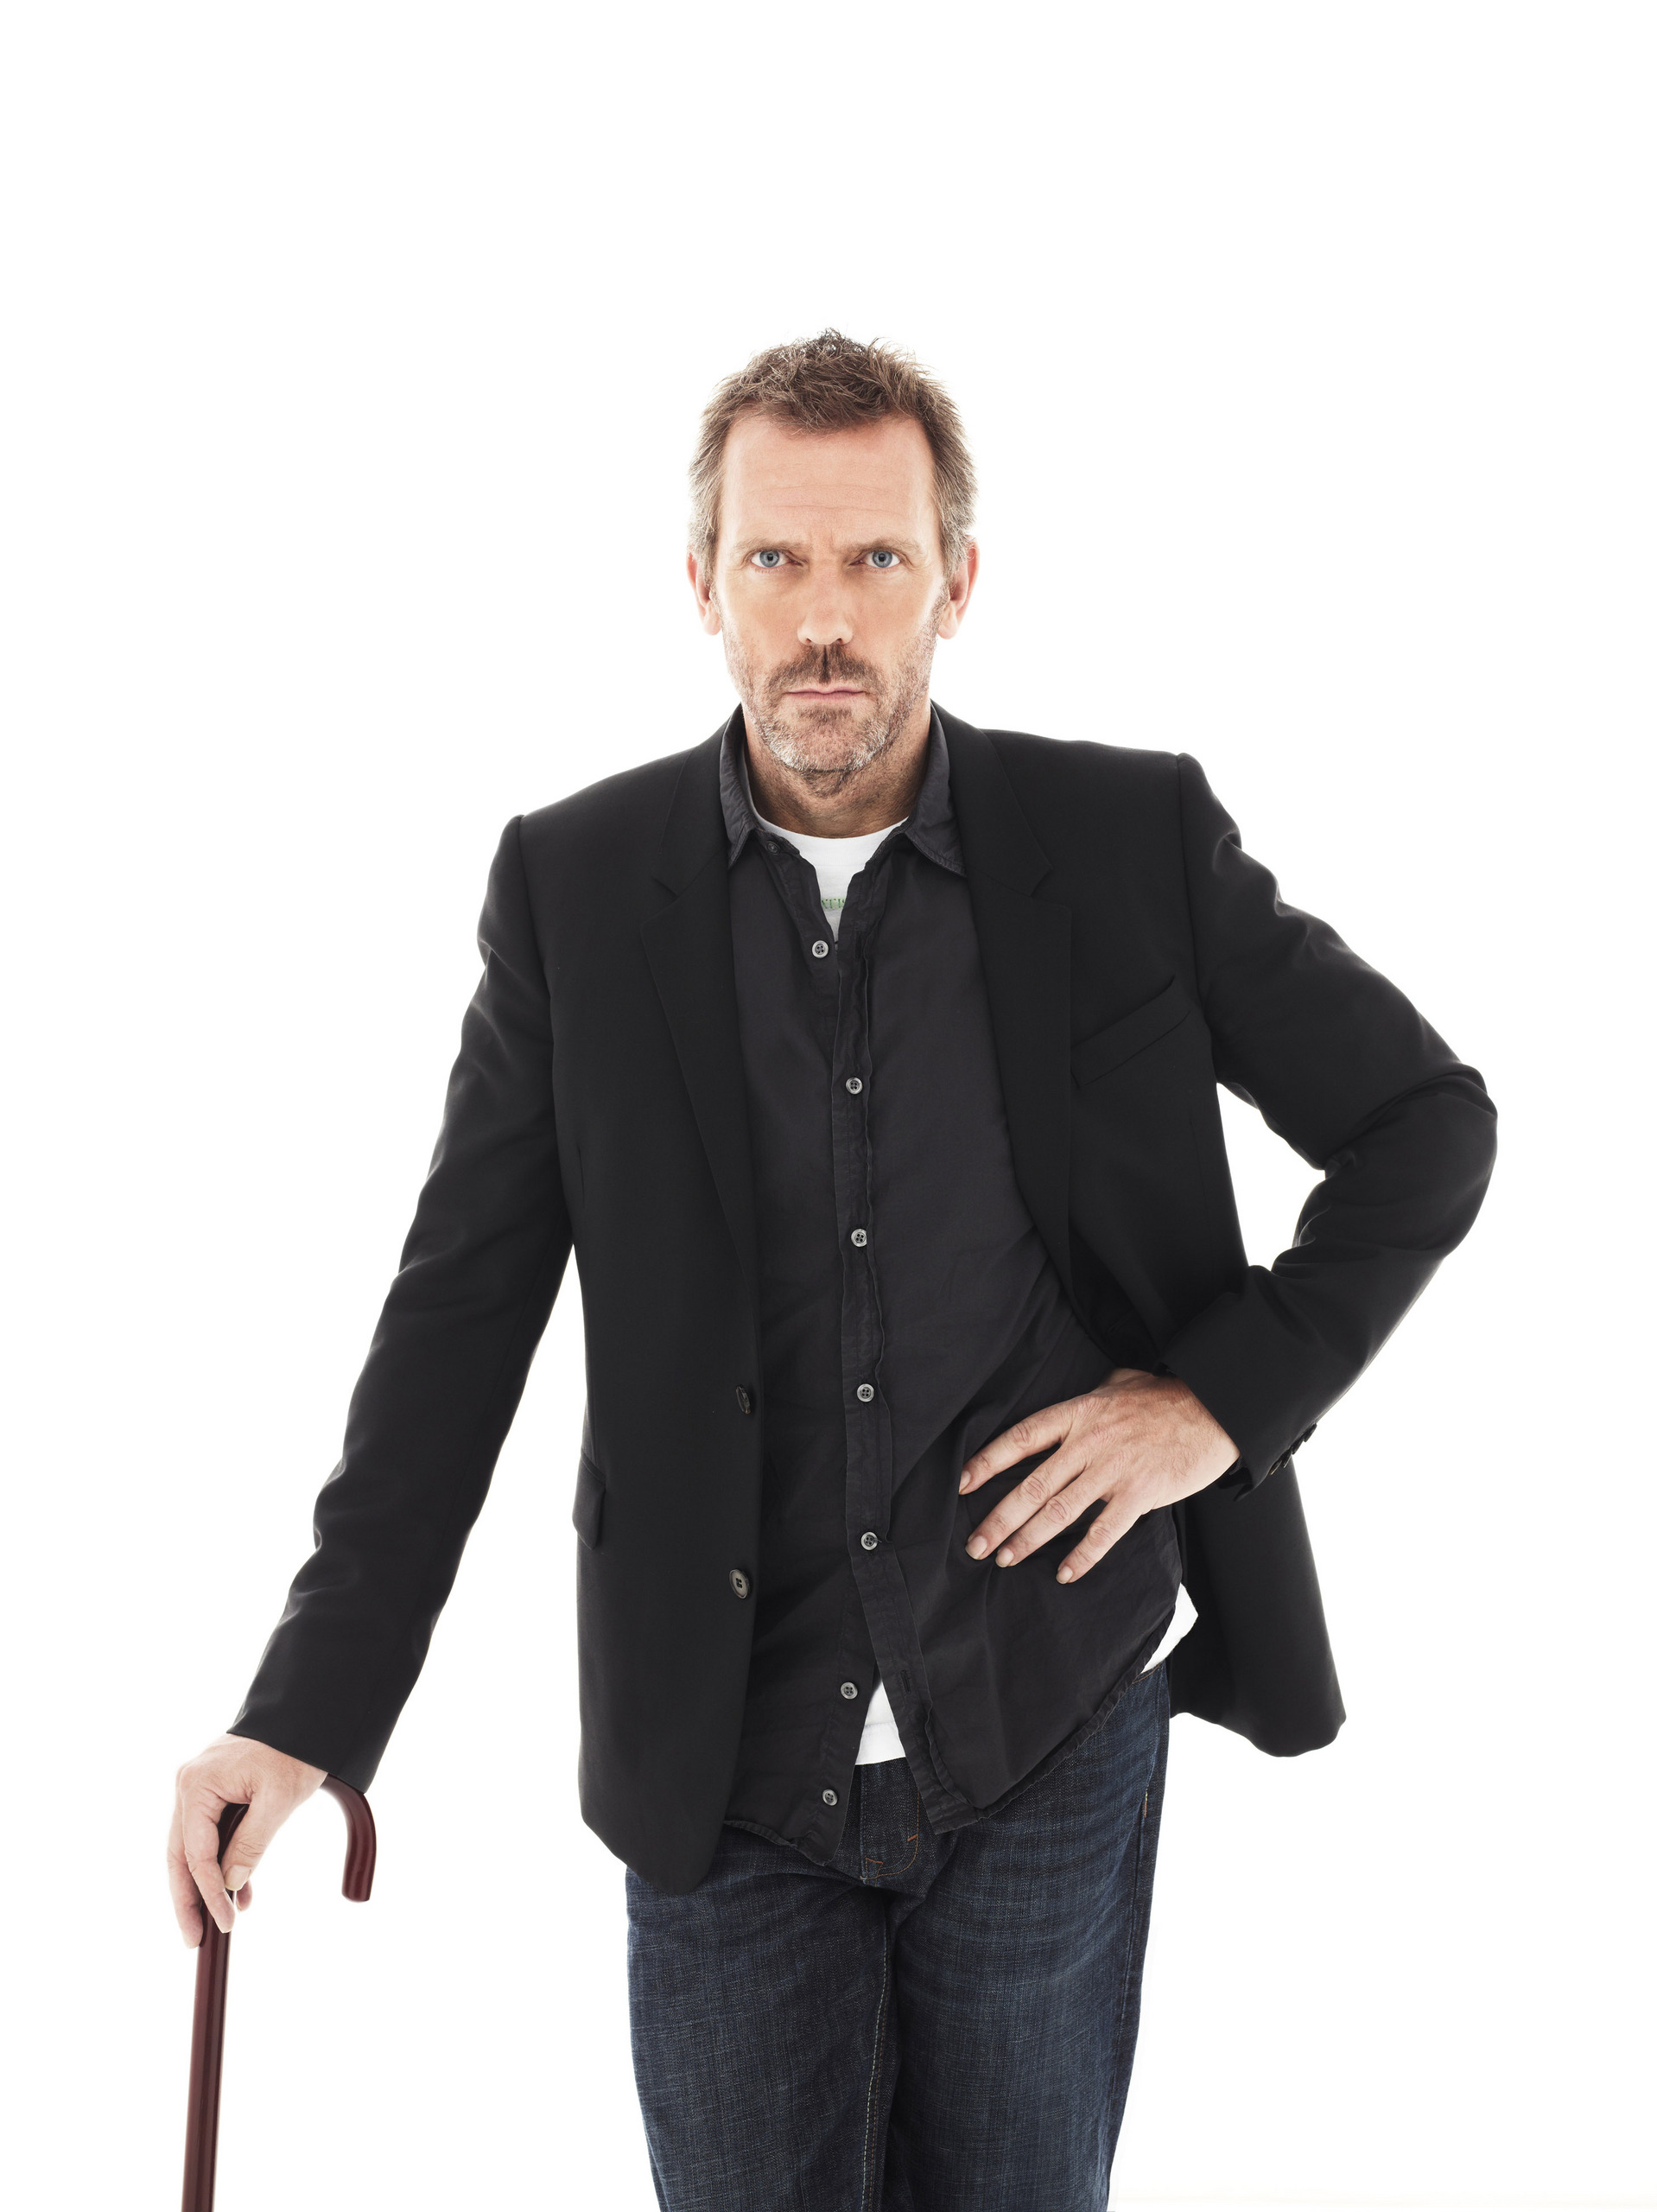 Dr Gregory House Dr Gregory House Photo 31945352